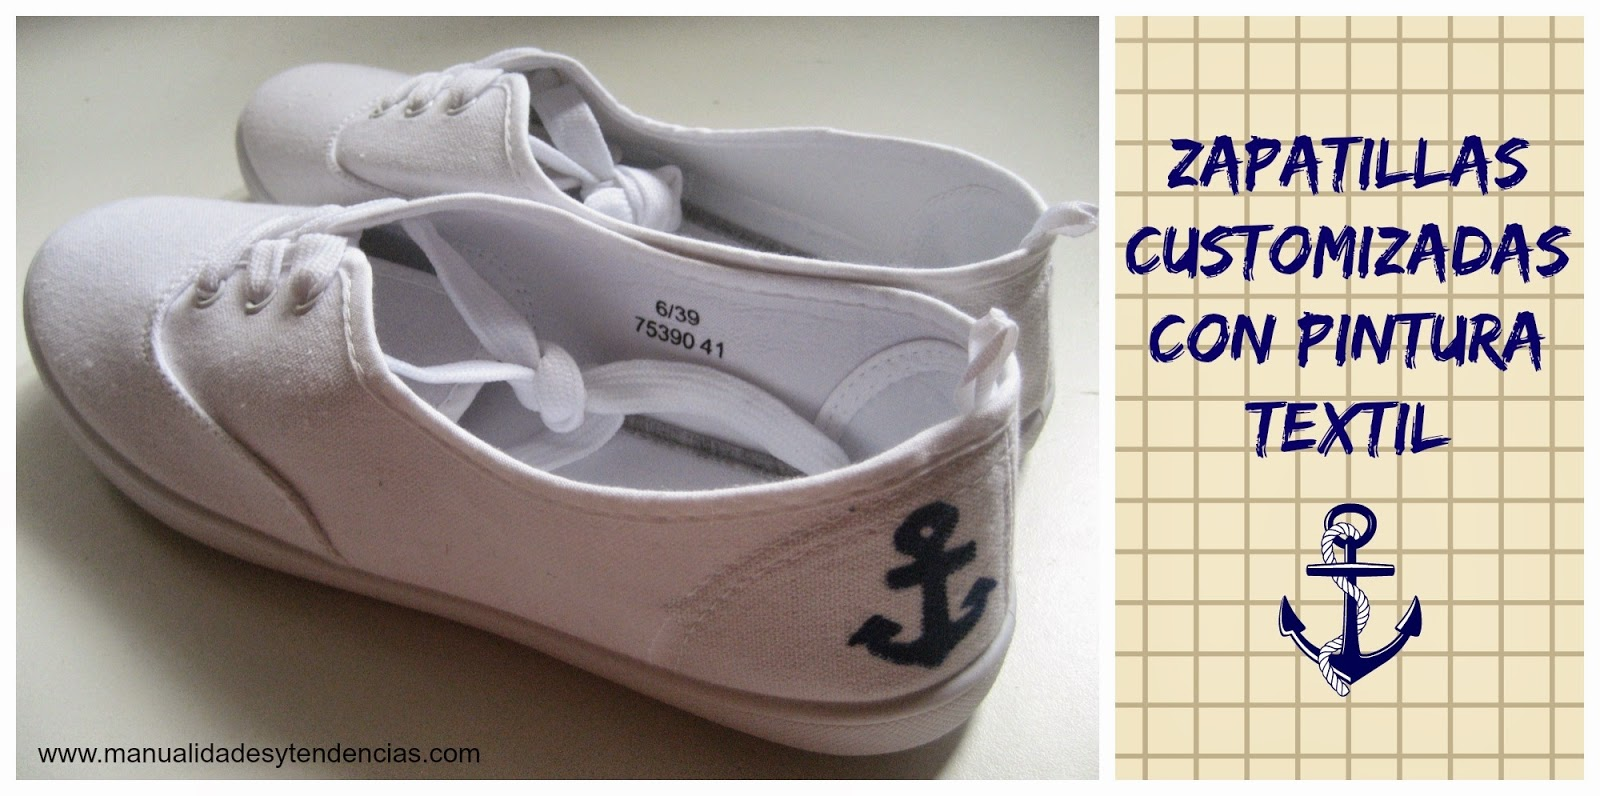 tutorial zapatillas pintadas con pintura textil / customized shoes